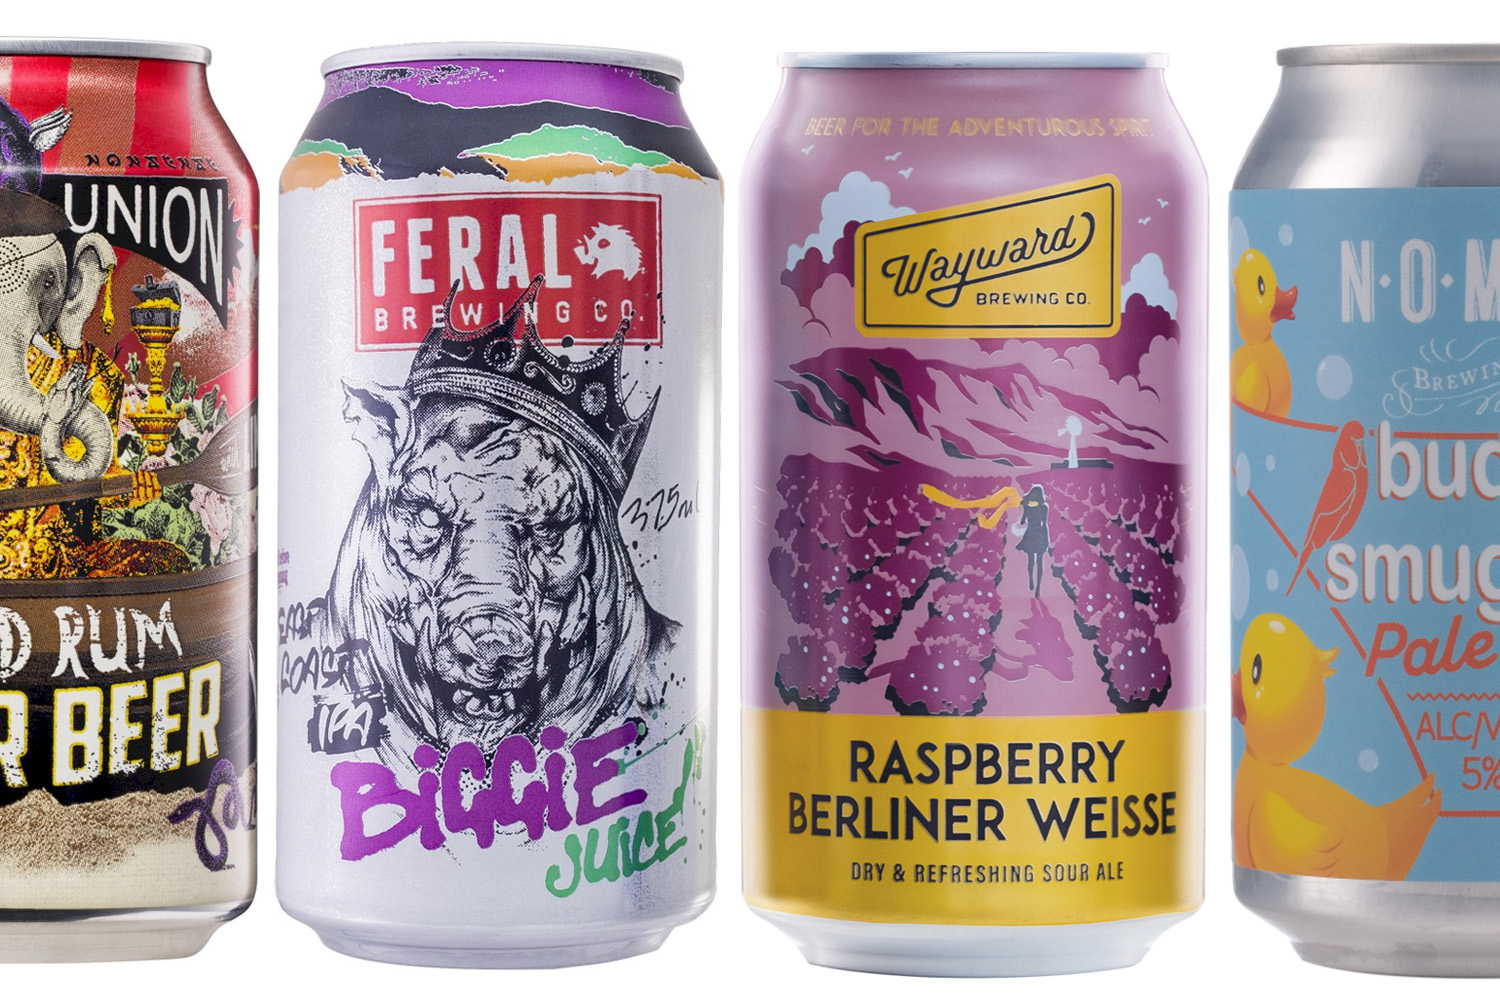 10 Aussie Craft Beers to Add to Your Bar Fridge